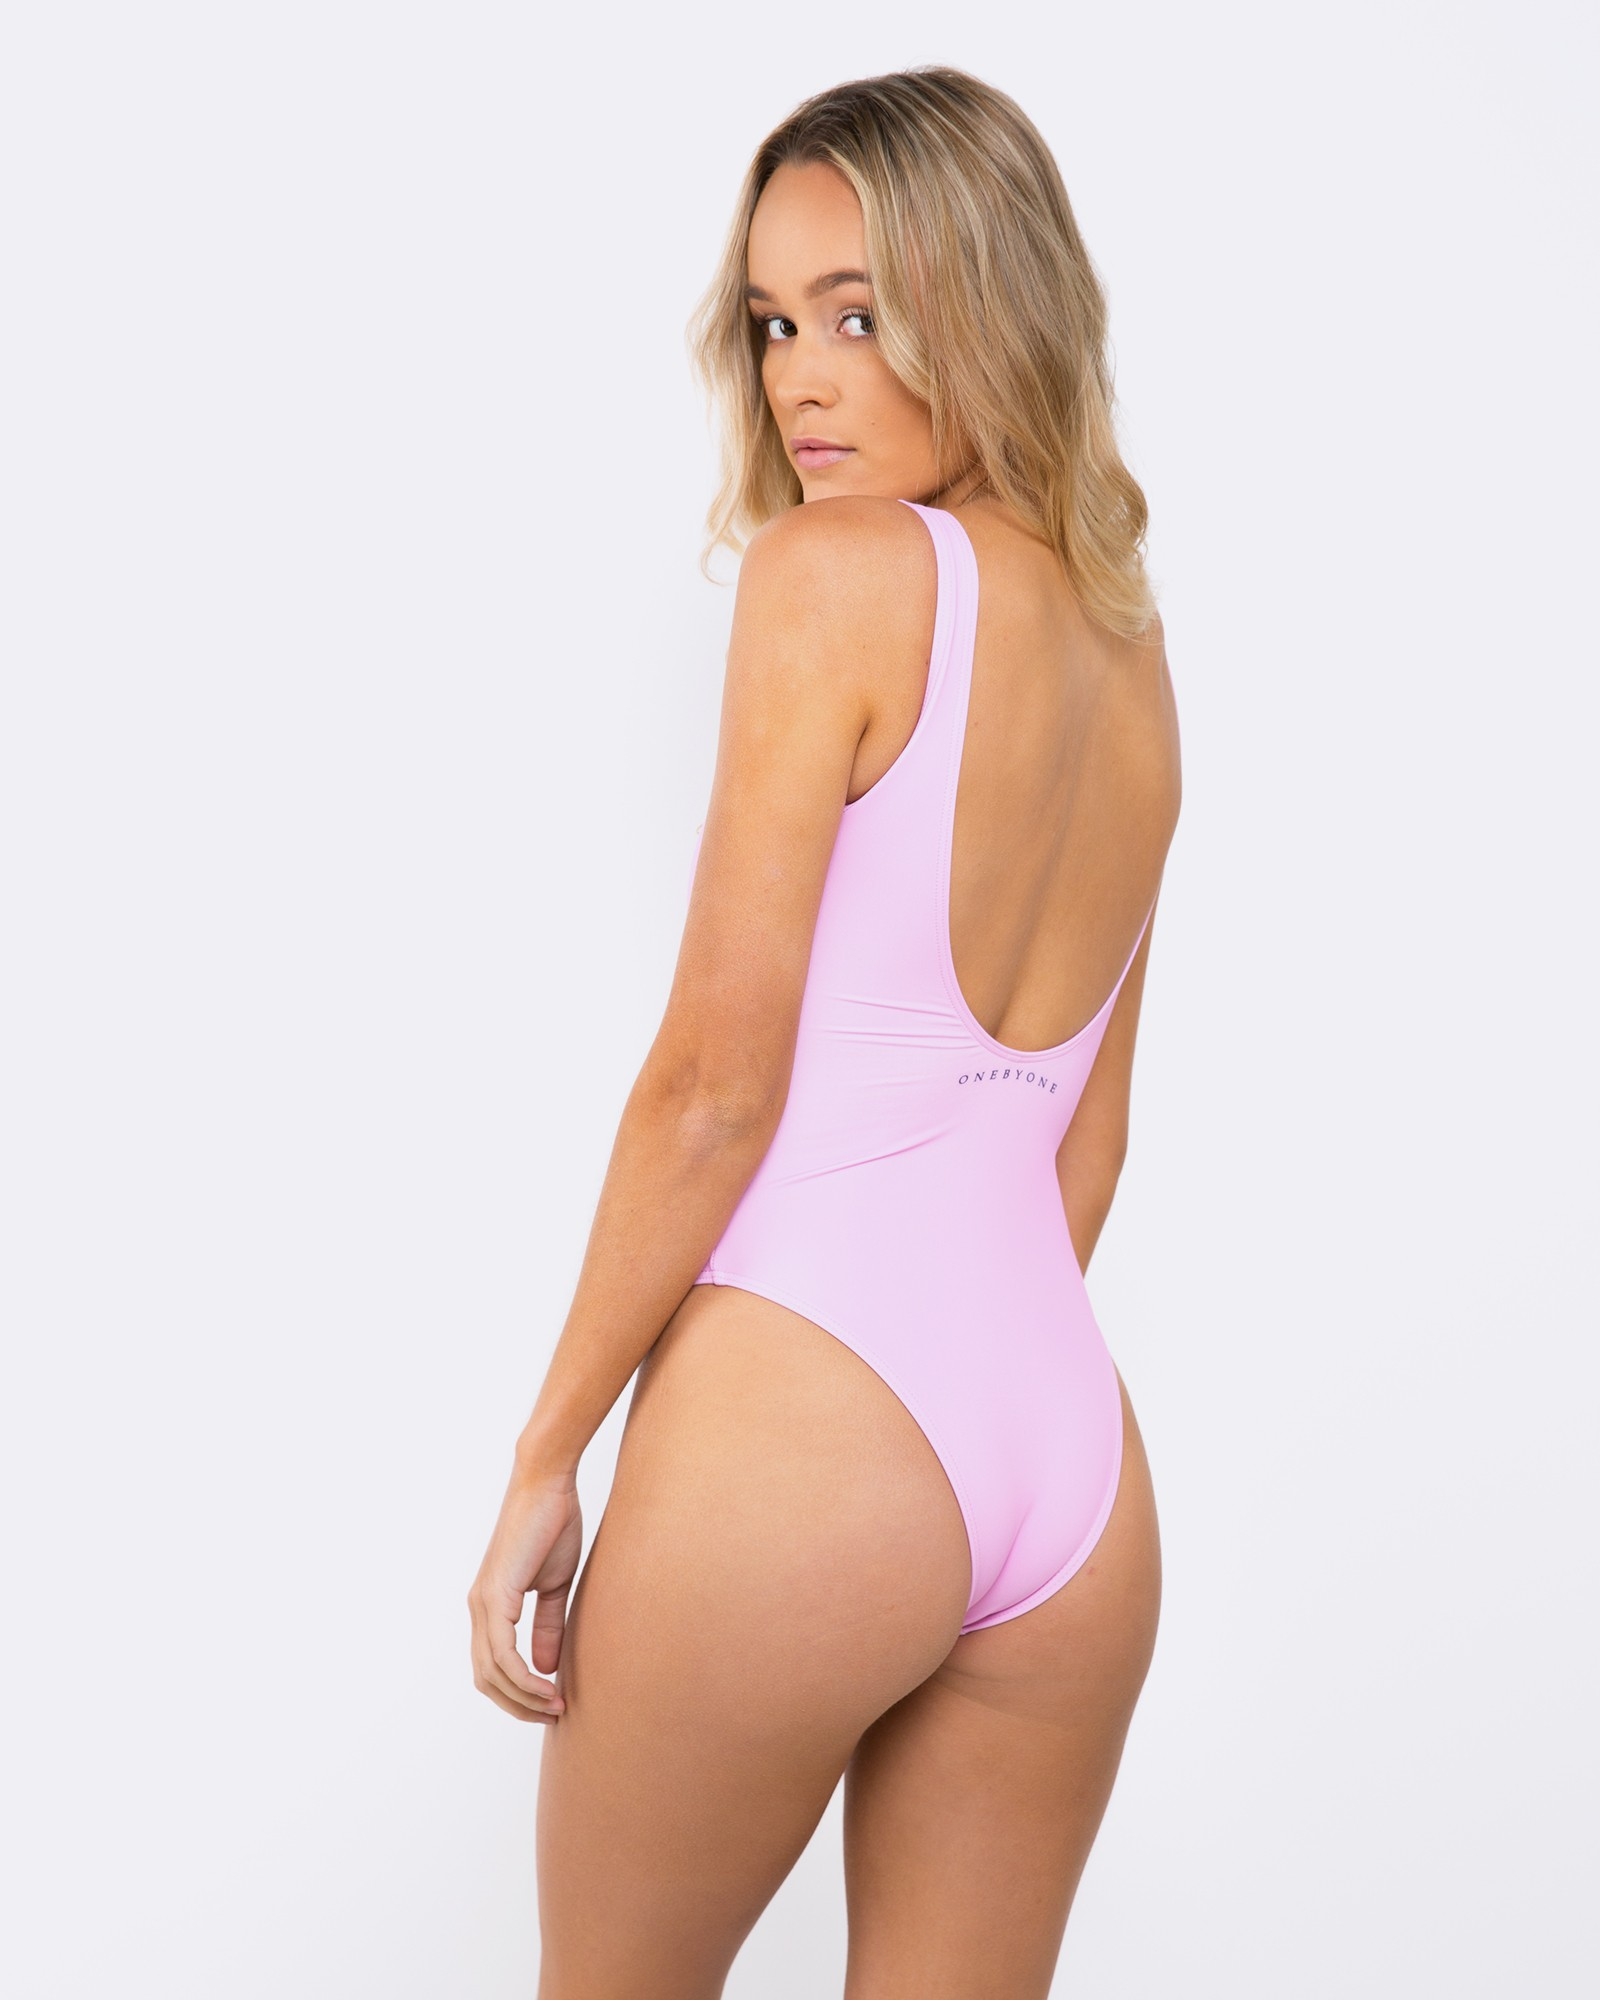 BLANK PINK SWIMSUIT